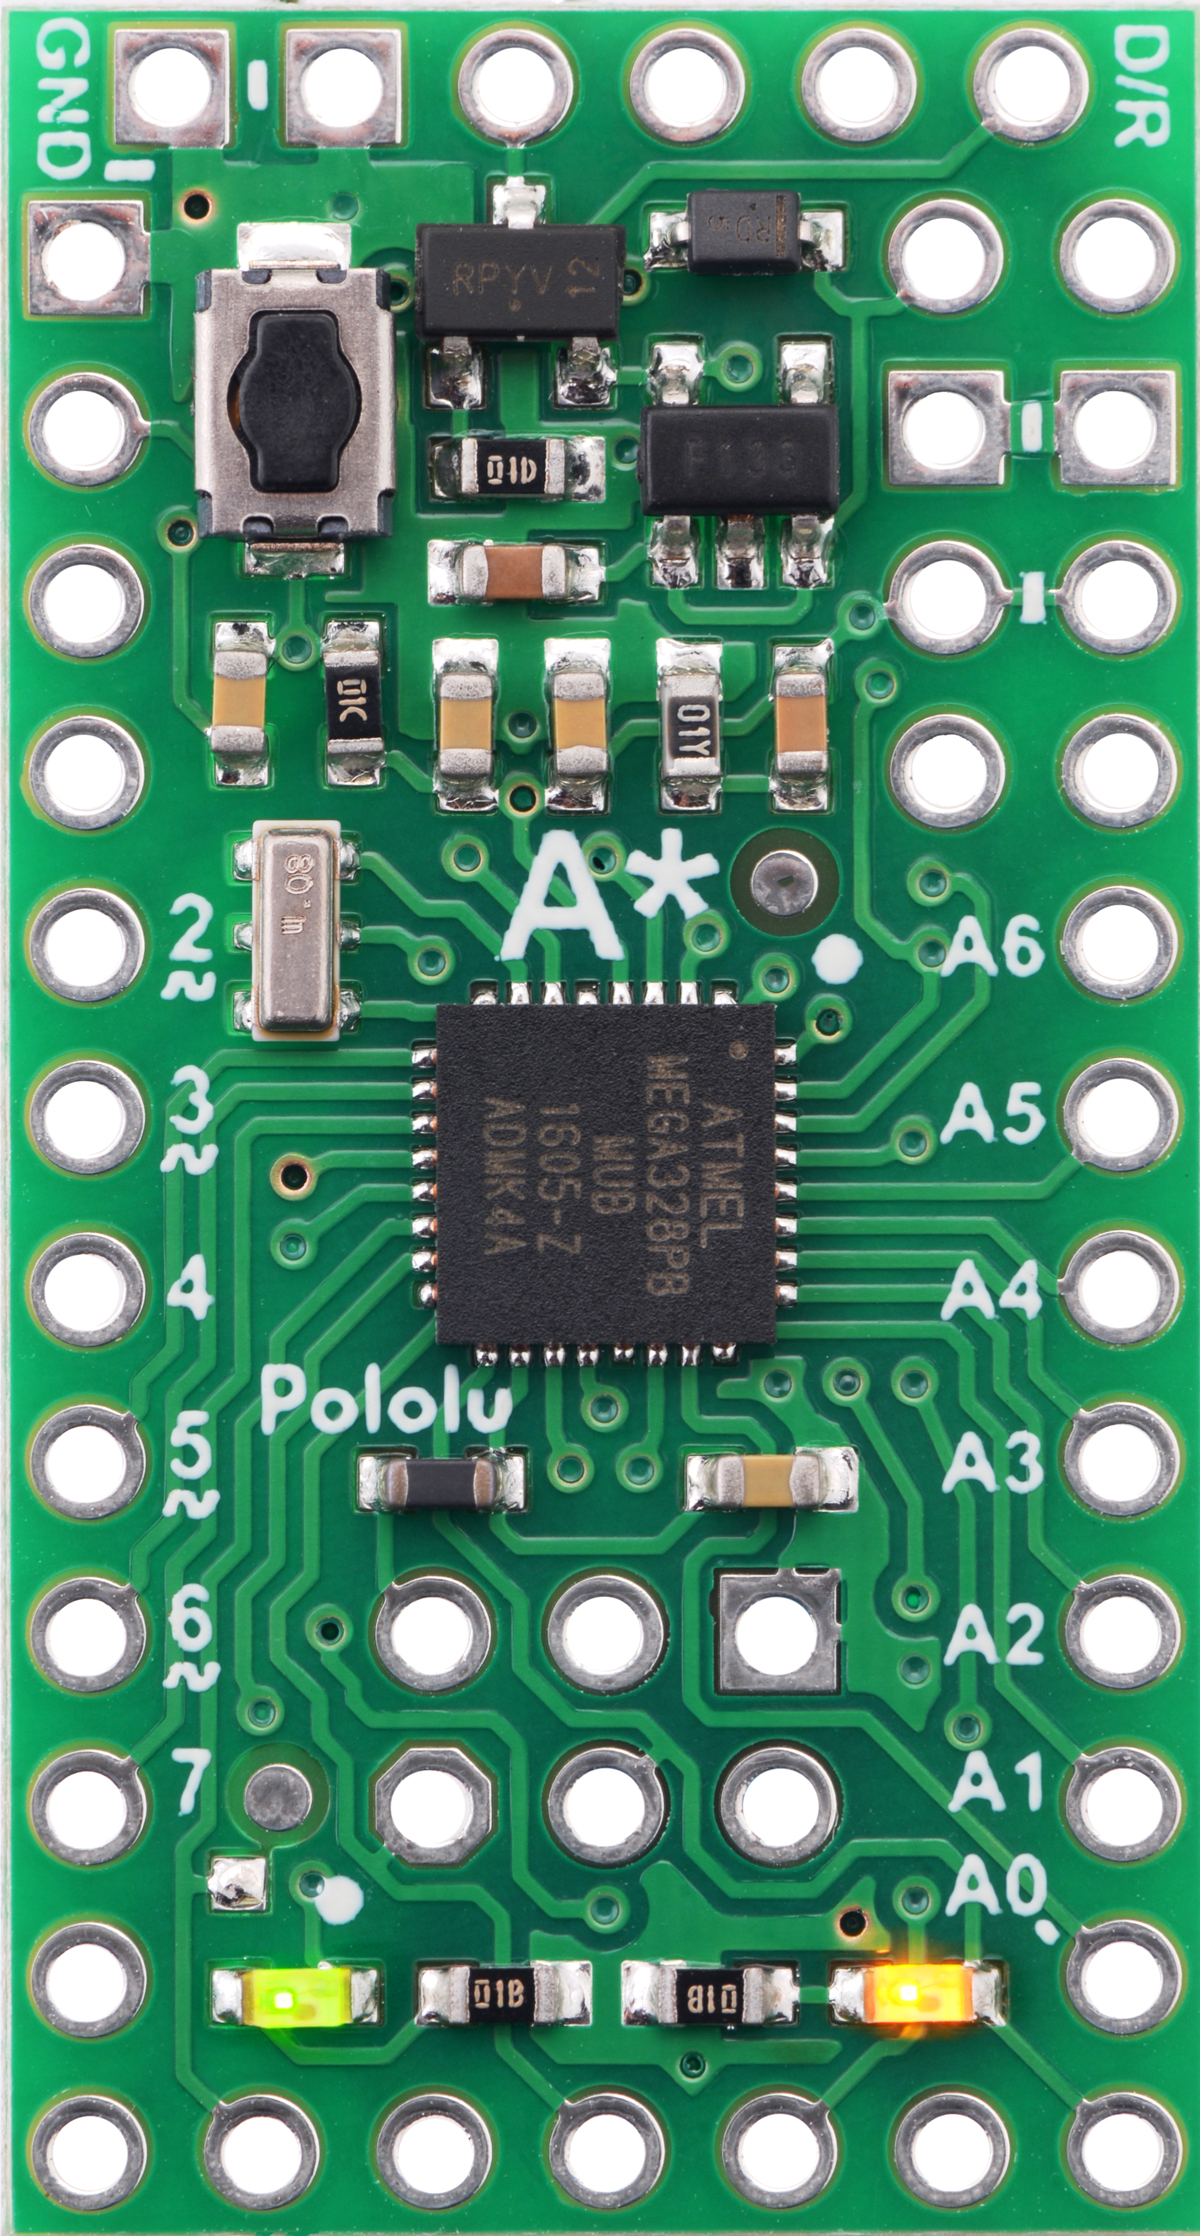 Pololu A Star 328pb Micro 33v 8mhz Working With External Interrupts In Avr Controller